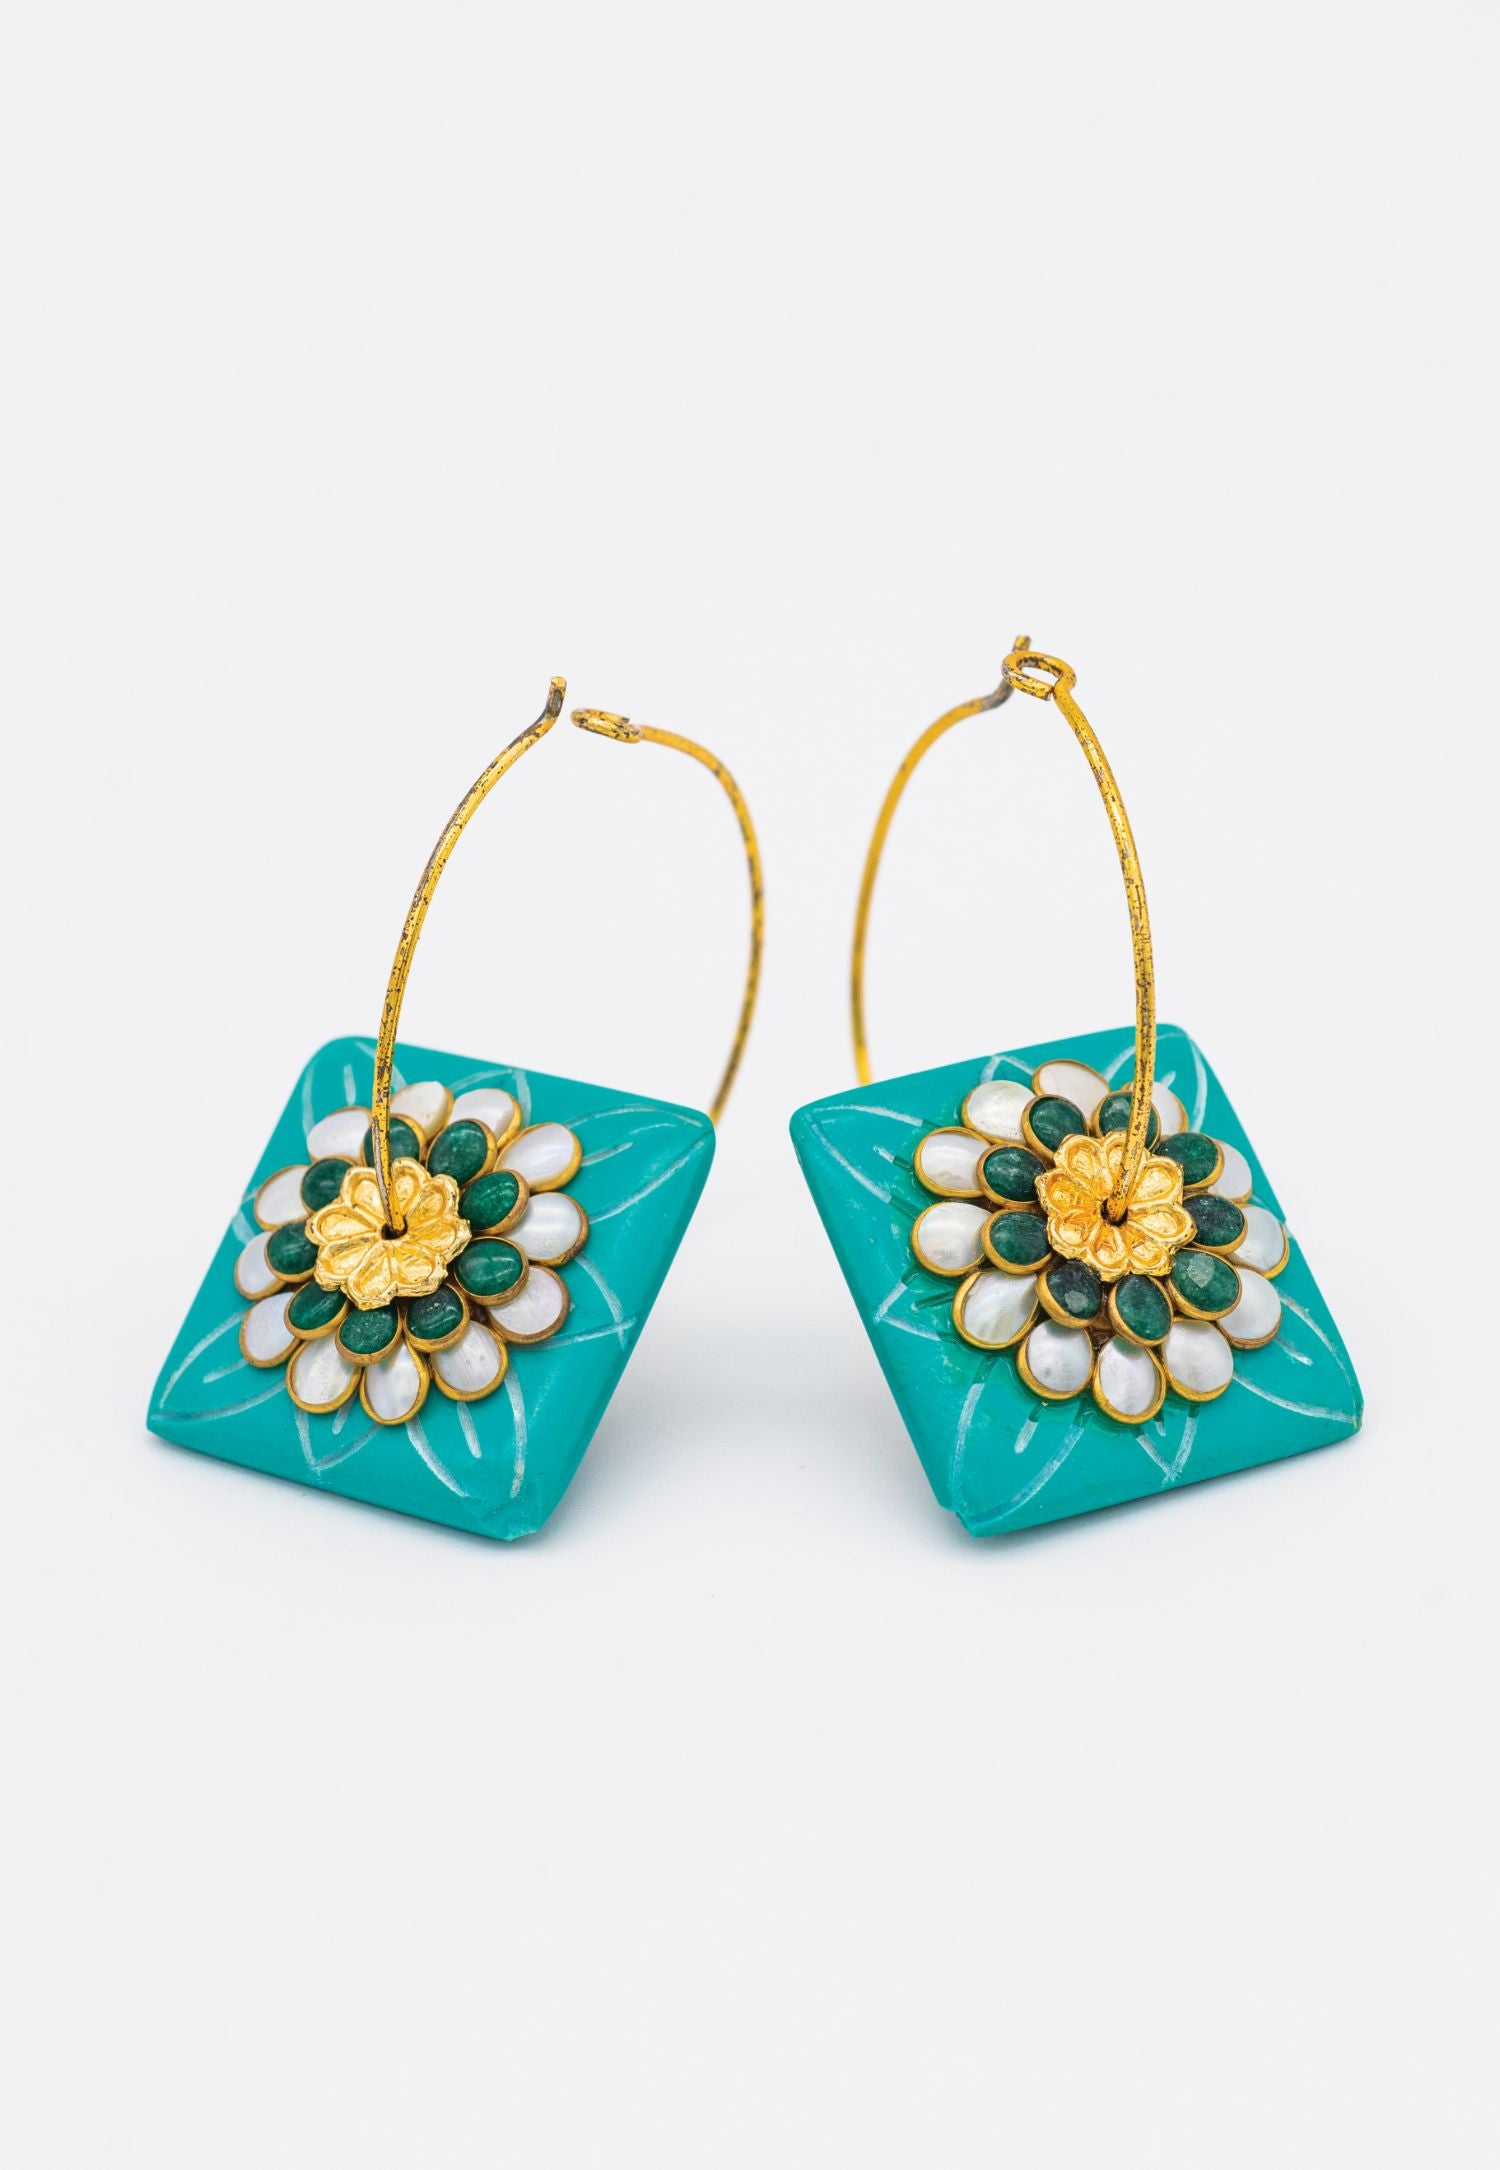 TEAL BLOCK EARRINGS WITH PEARL AND GOLD ACCENTS